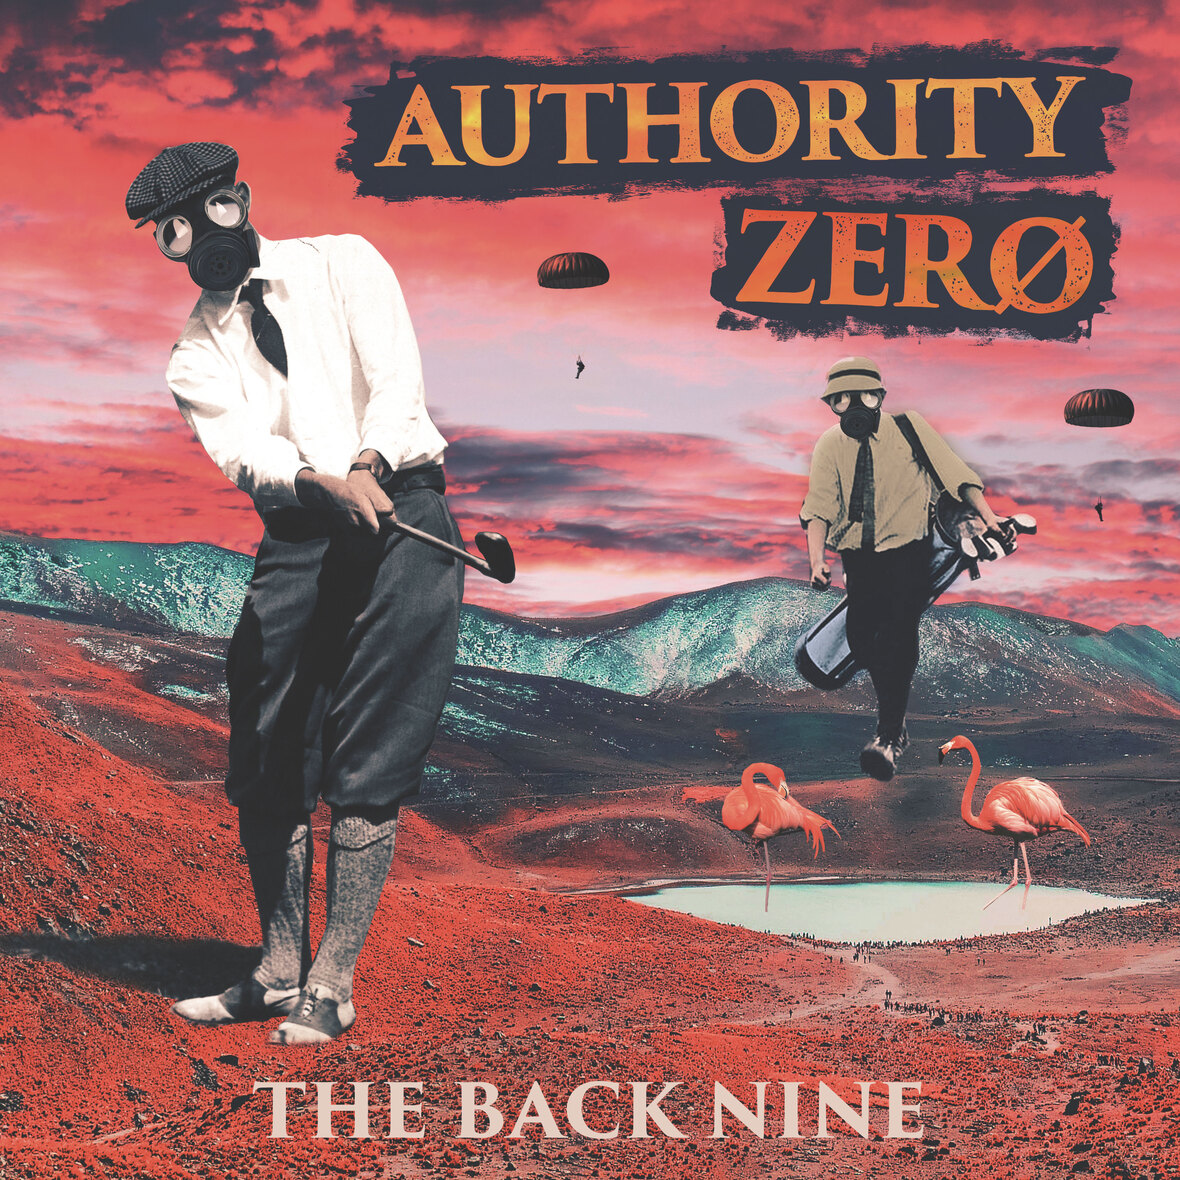 Authority Zero Announce New EP 'The Back Nine' Out April 30